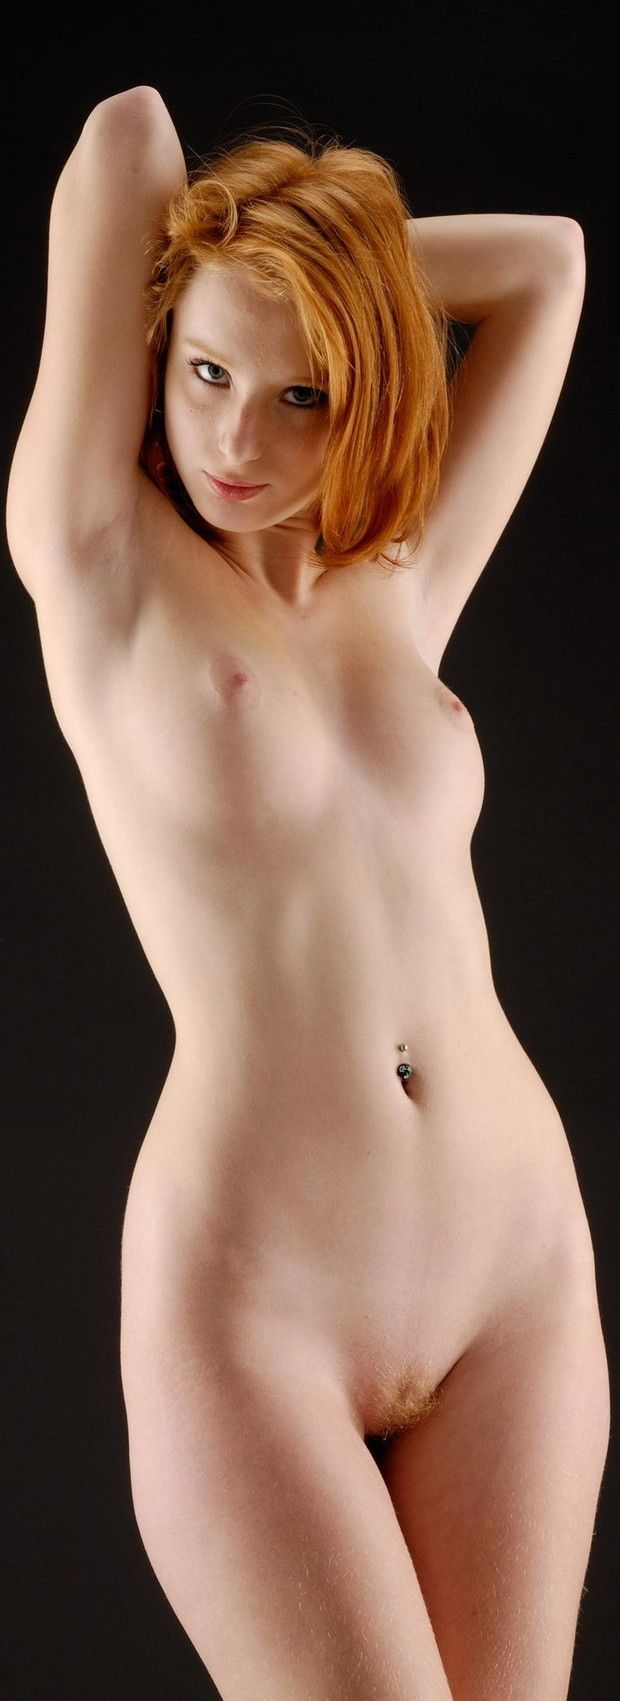 best redheads images on pinterest redheads red heads and beautiful women 1